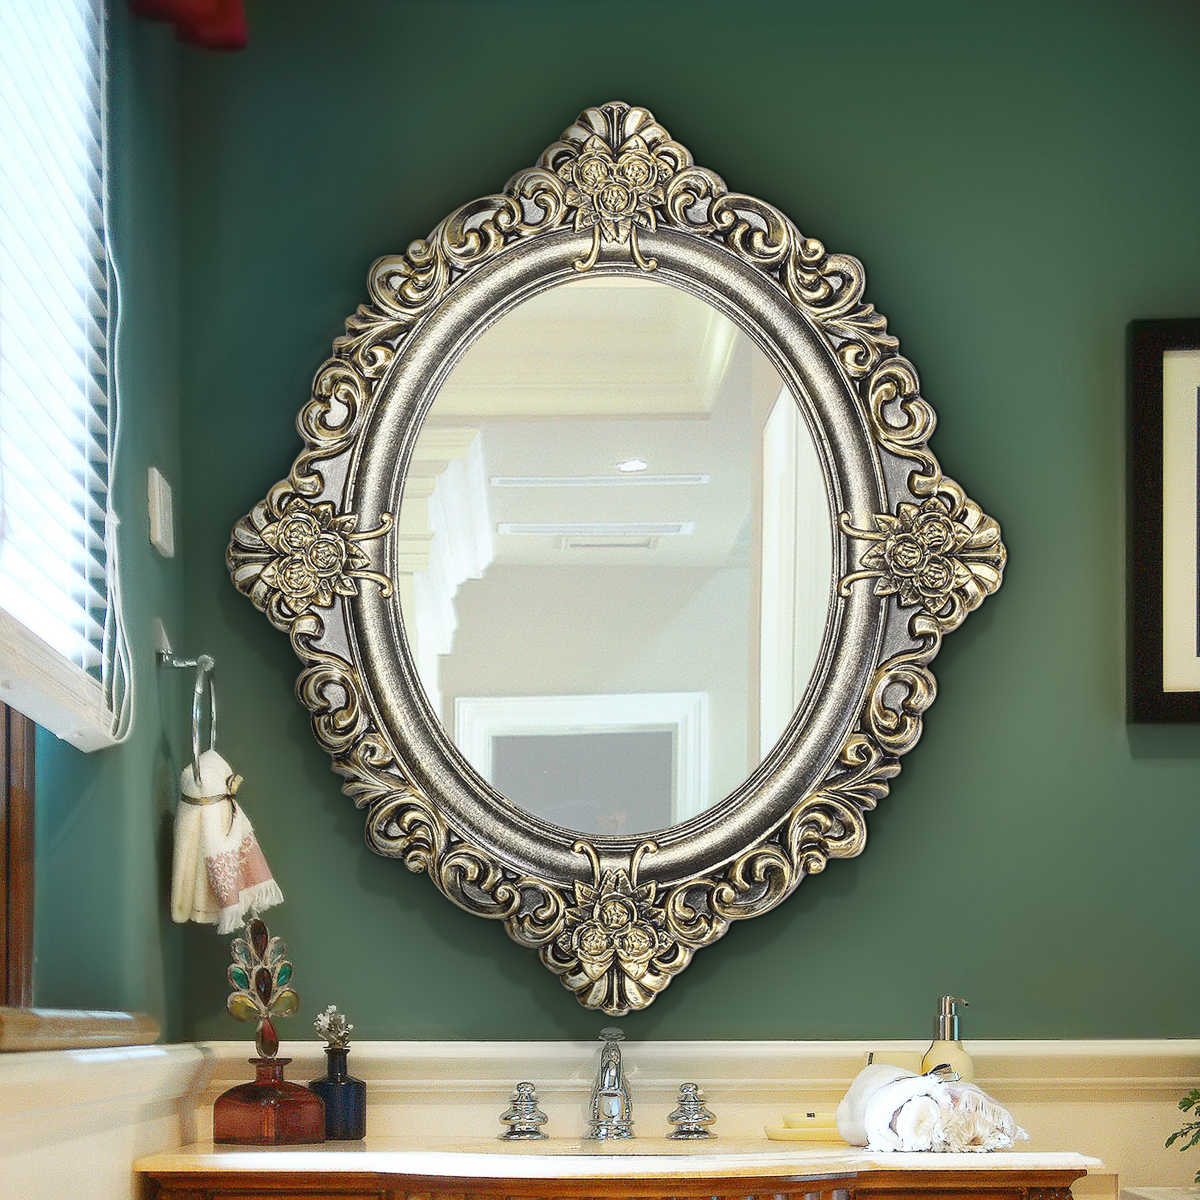 23 Inch Oval Decorative Mirrors Retro Vintage Wall Mouted